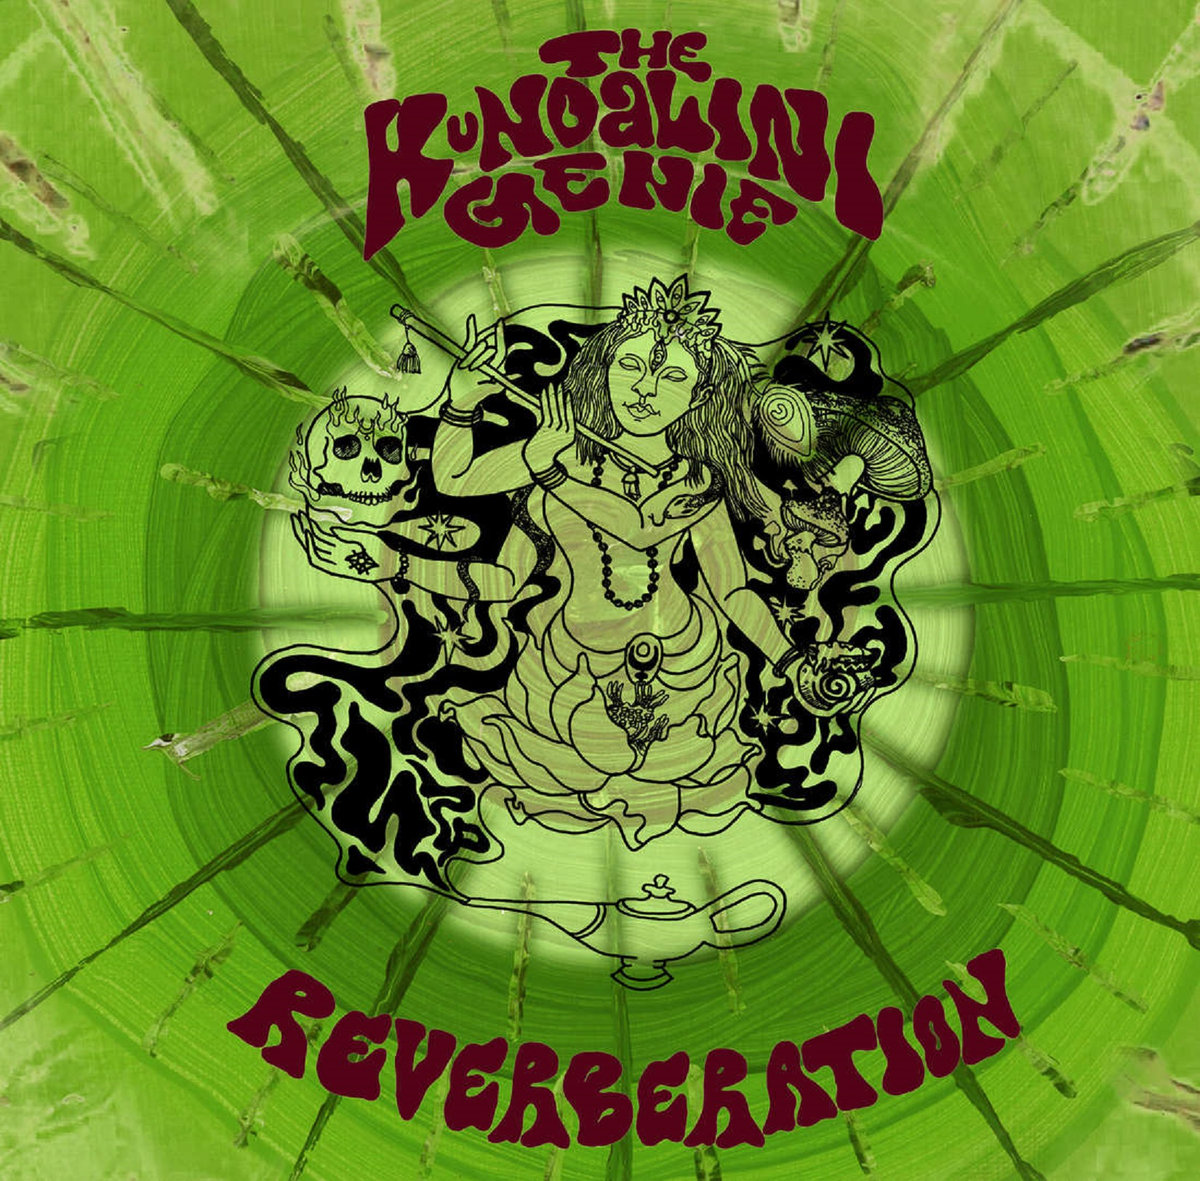 The Kundalini Genie On Spotify, Reverberation album review, Inside, Out! Single review, Moss Moth, Artwork, Mario D'Agostino, Carlton Studios, Jamie Telford